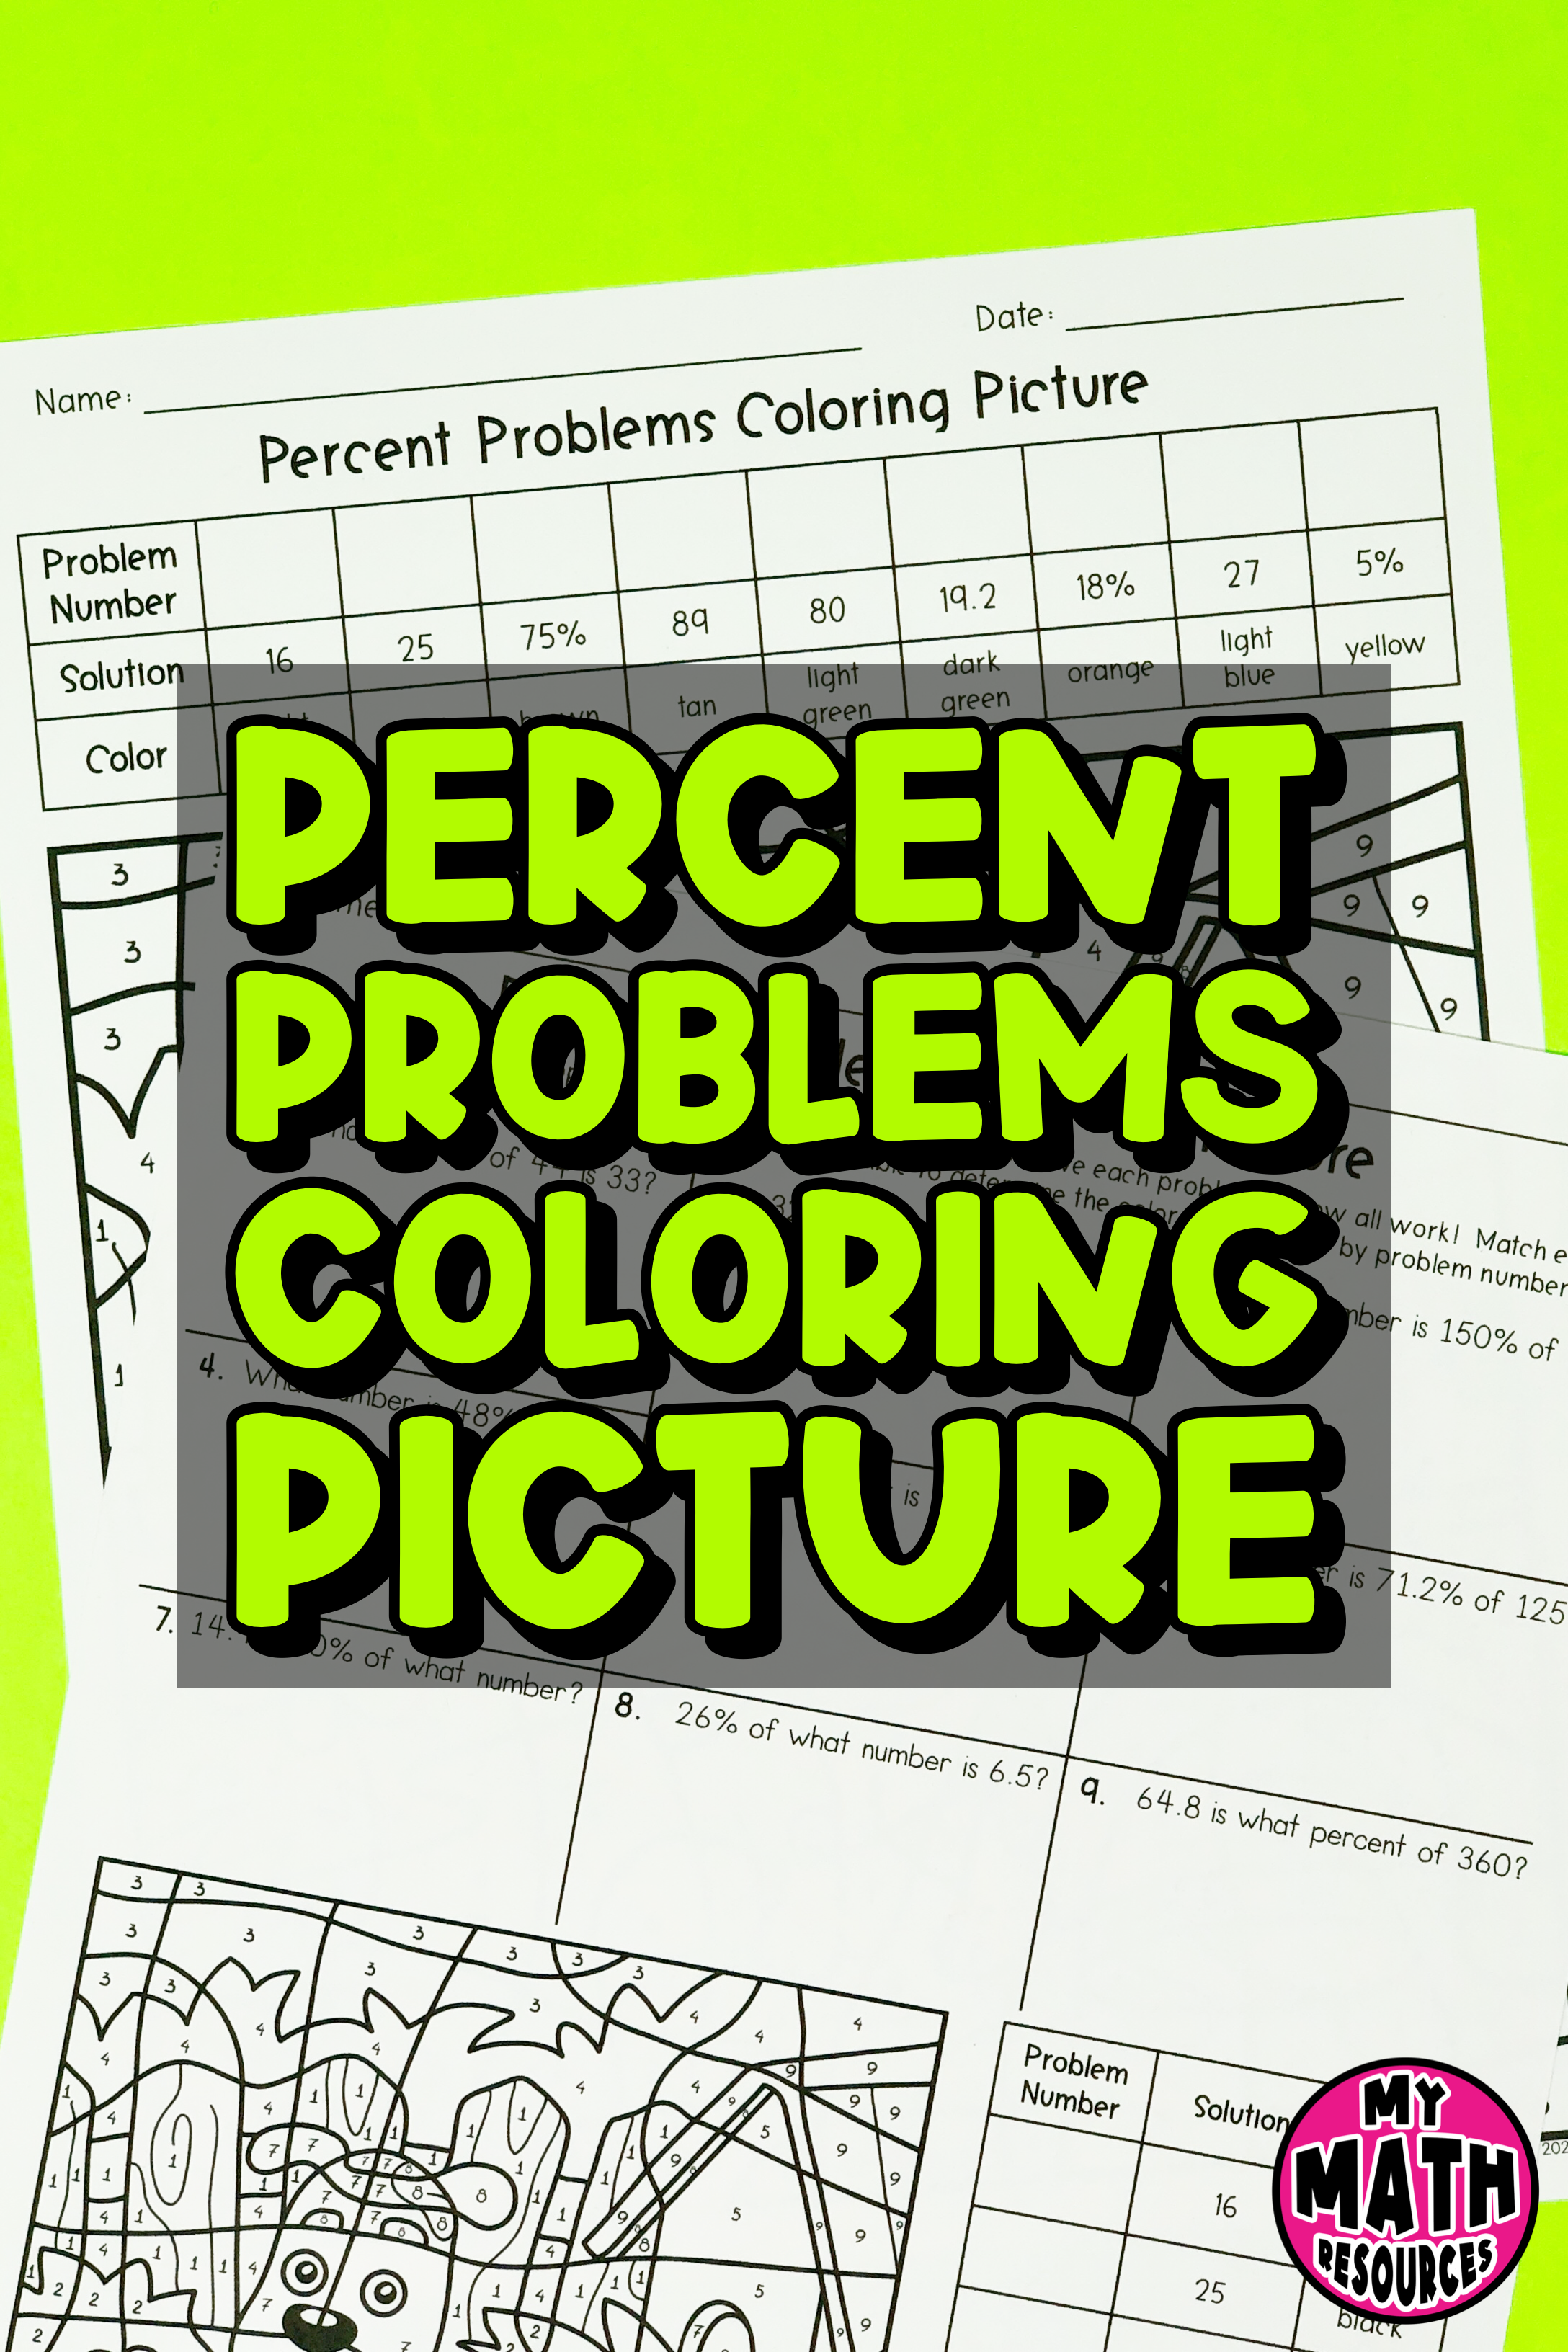 medium resolution of My Math Resources - Percent Problems Coloring Picture Worksheet   7th grade  math worksheets